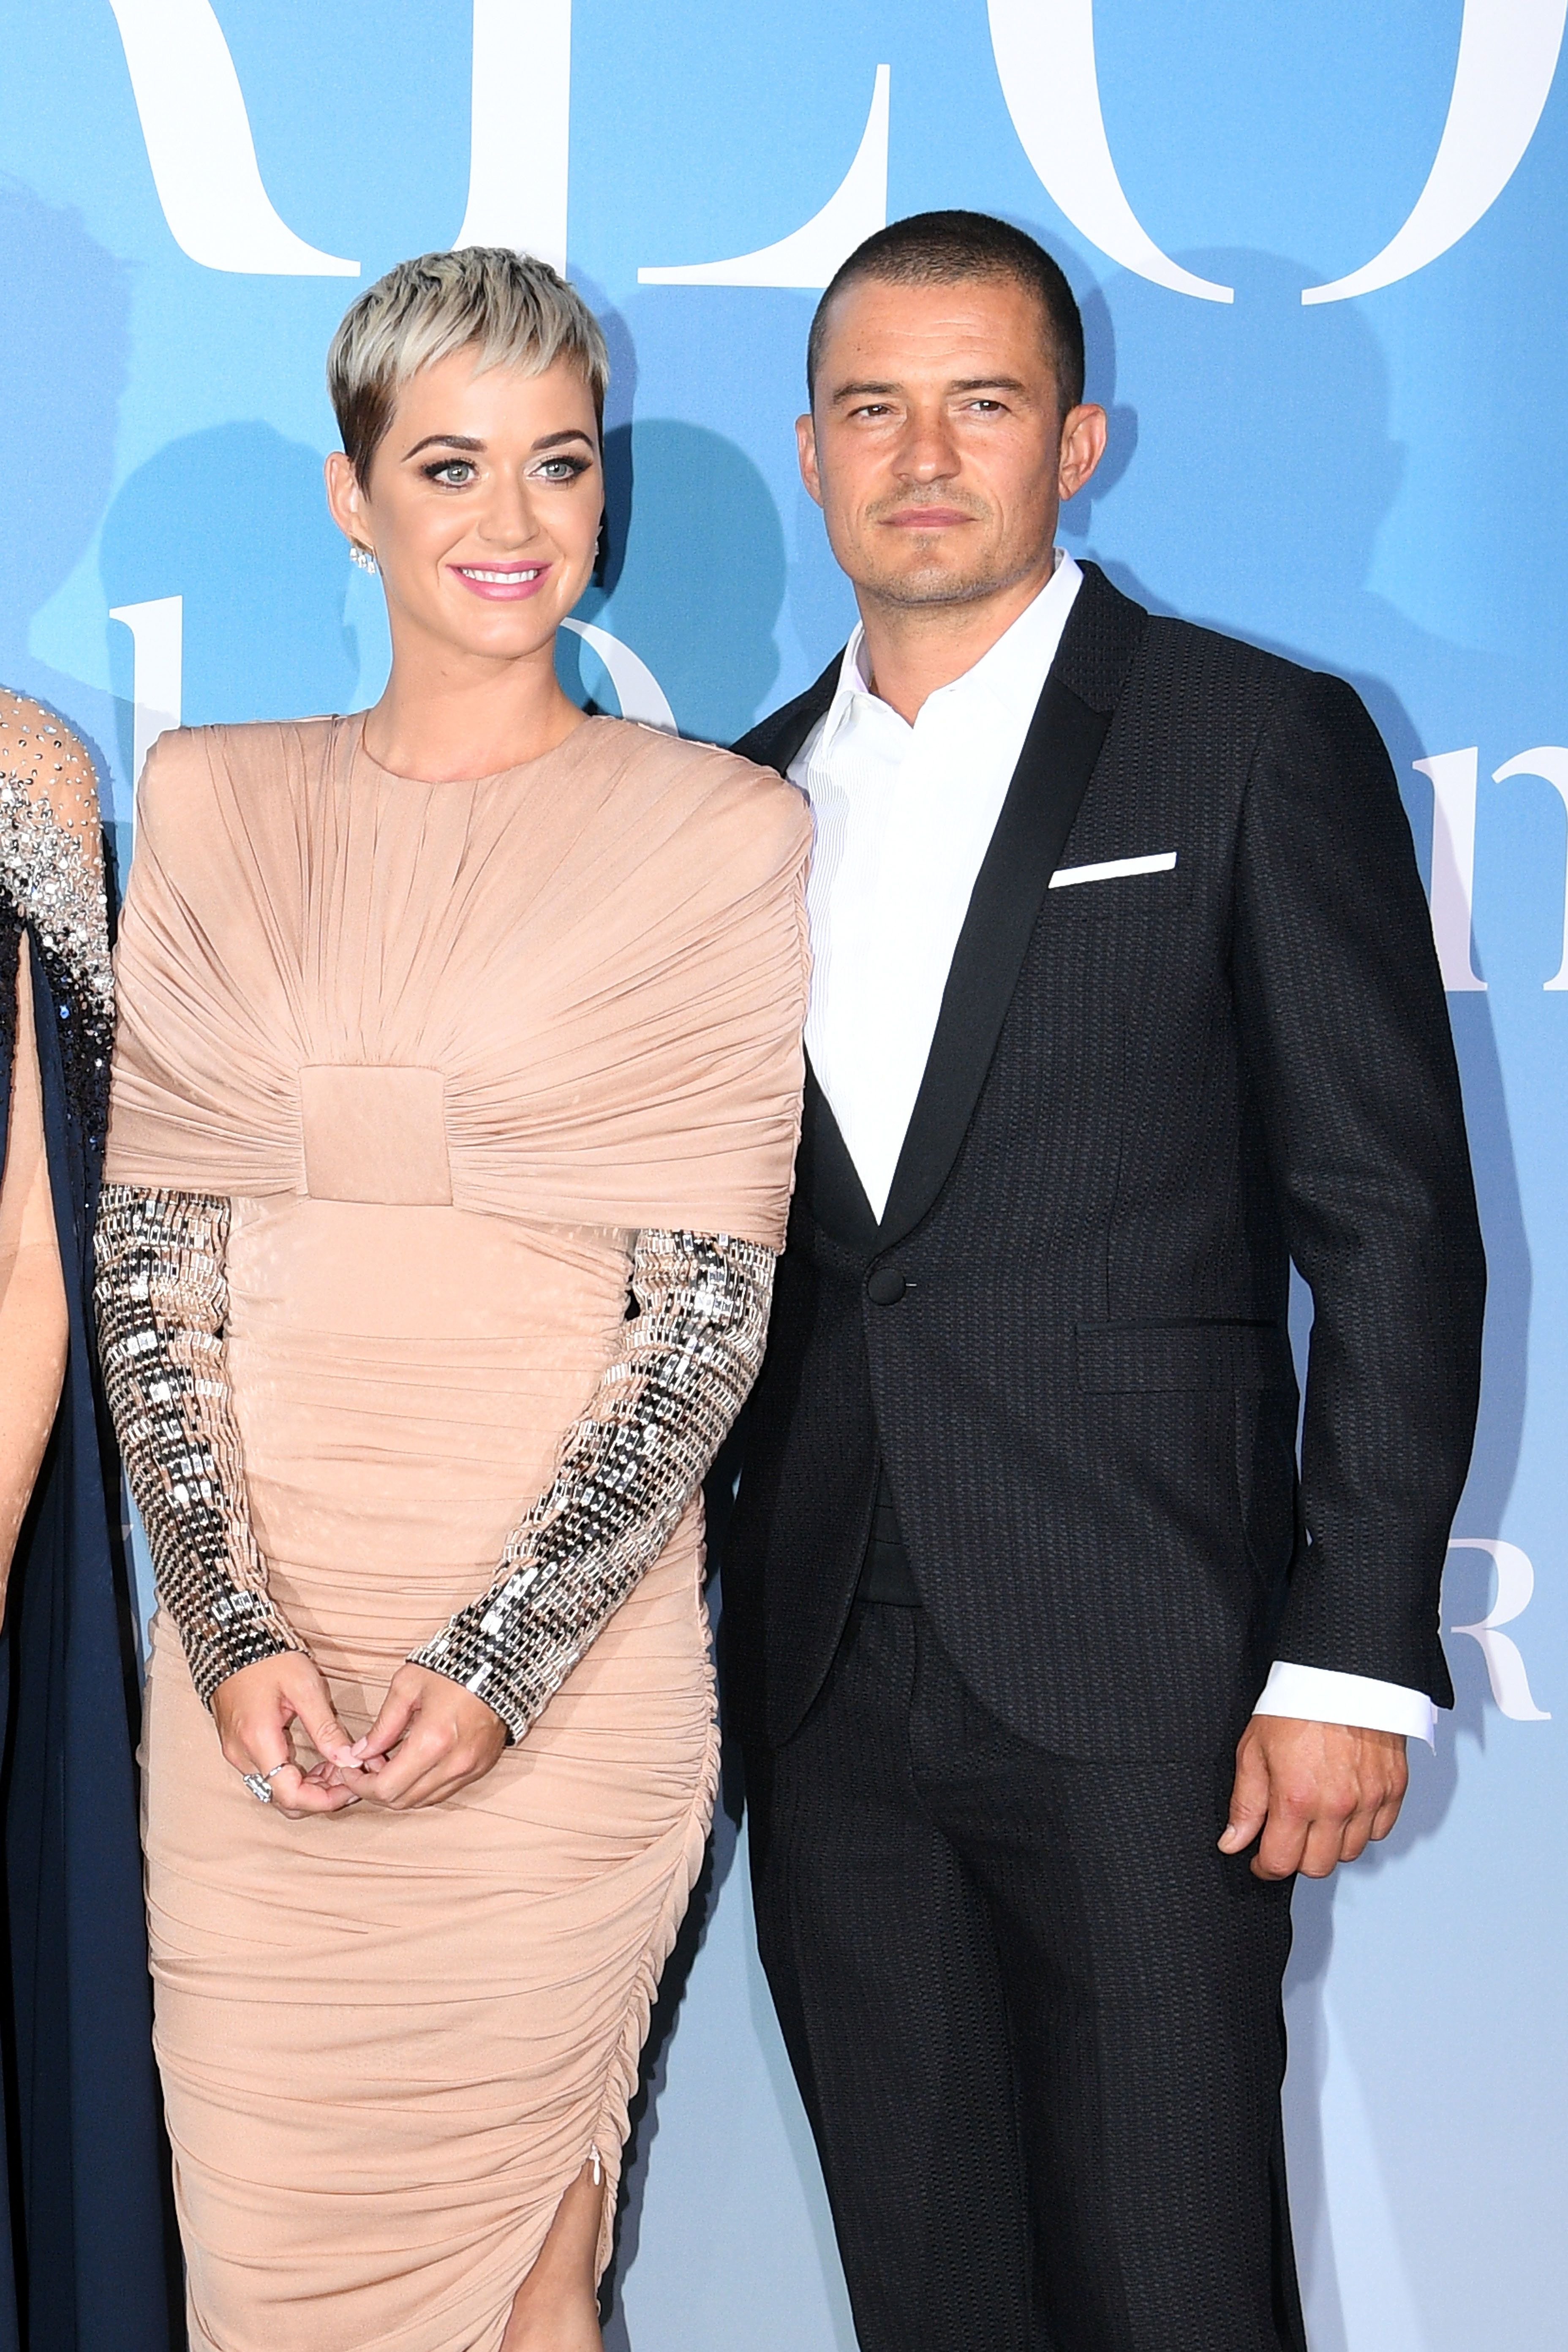 FULL BLOOM: Katy Perry And Orlando Bloom Tease Engagement After 3 Years